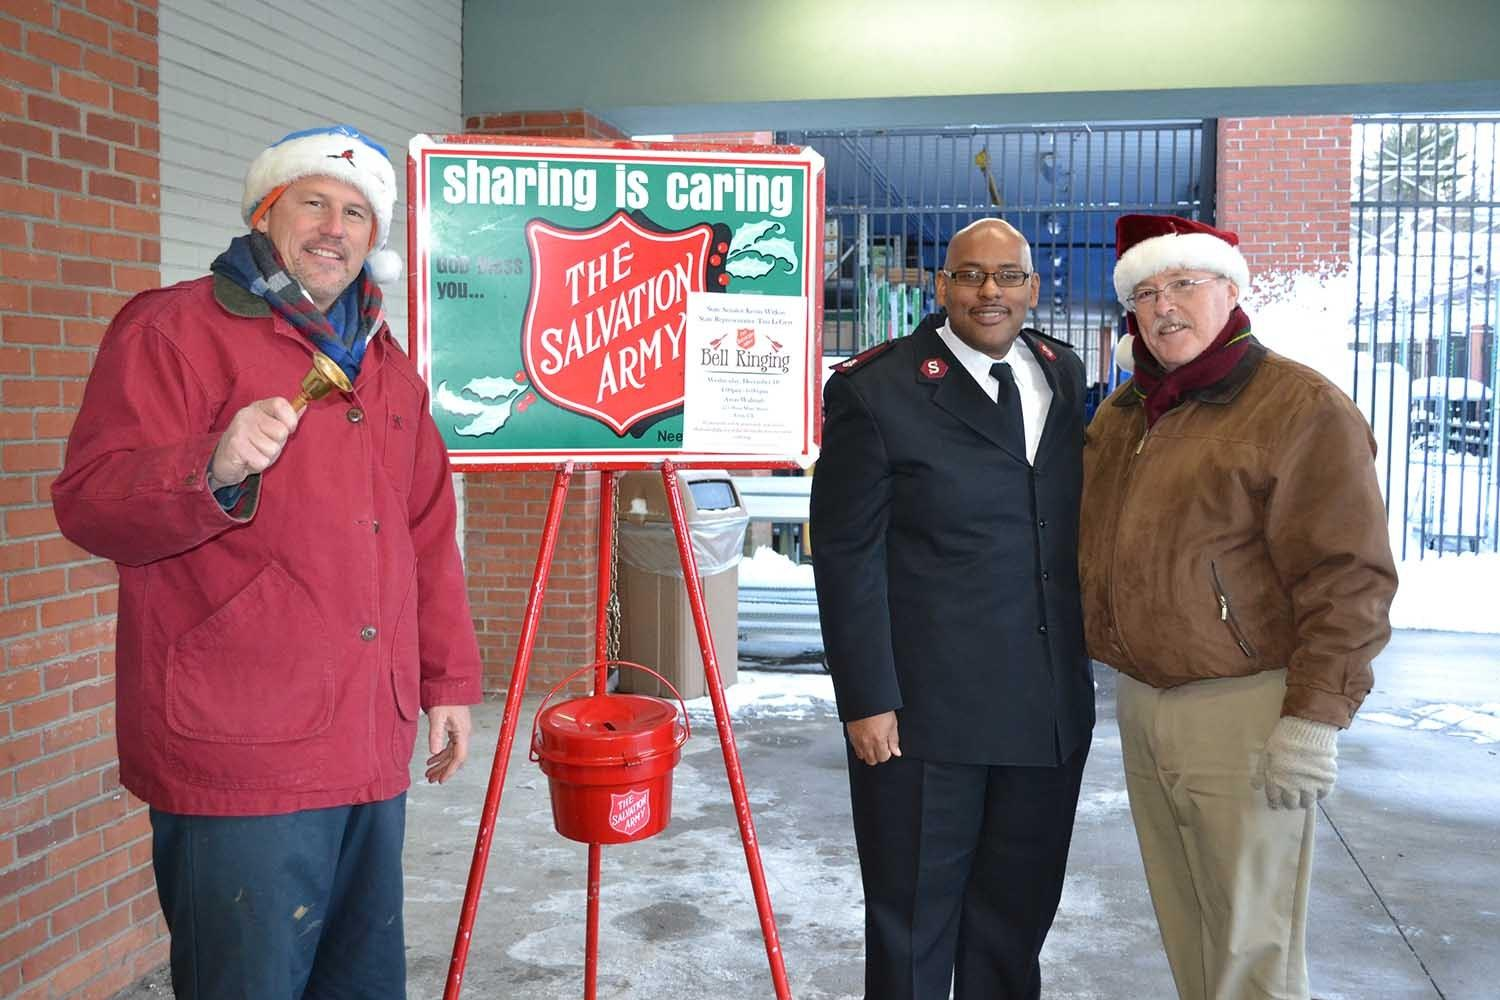 State Sen. Kevin Witkos, left, and state Rep. Tim LeGeyt, at right, were recently at the Walmart in Avon to help with the Salvation Army's Red Kettle Campaign. With them is Salvation Army Major Brian Glasco